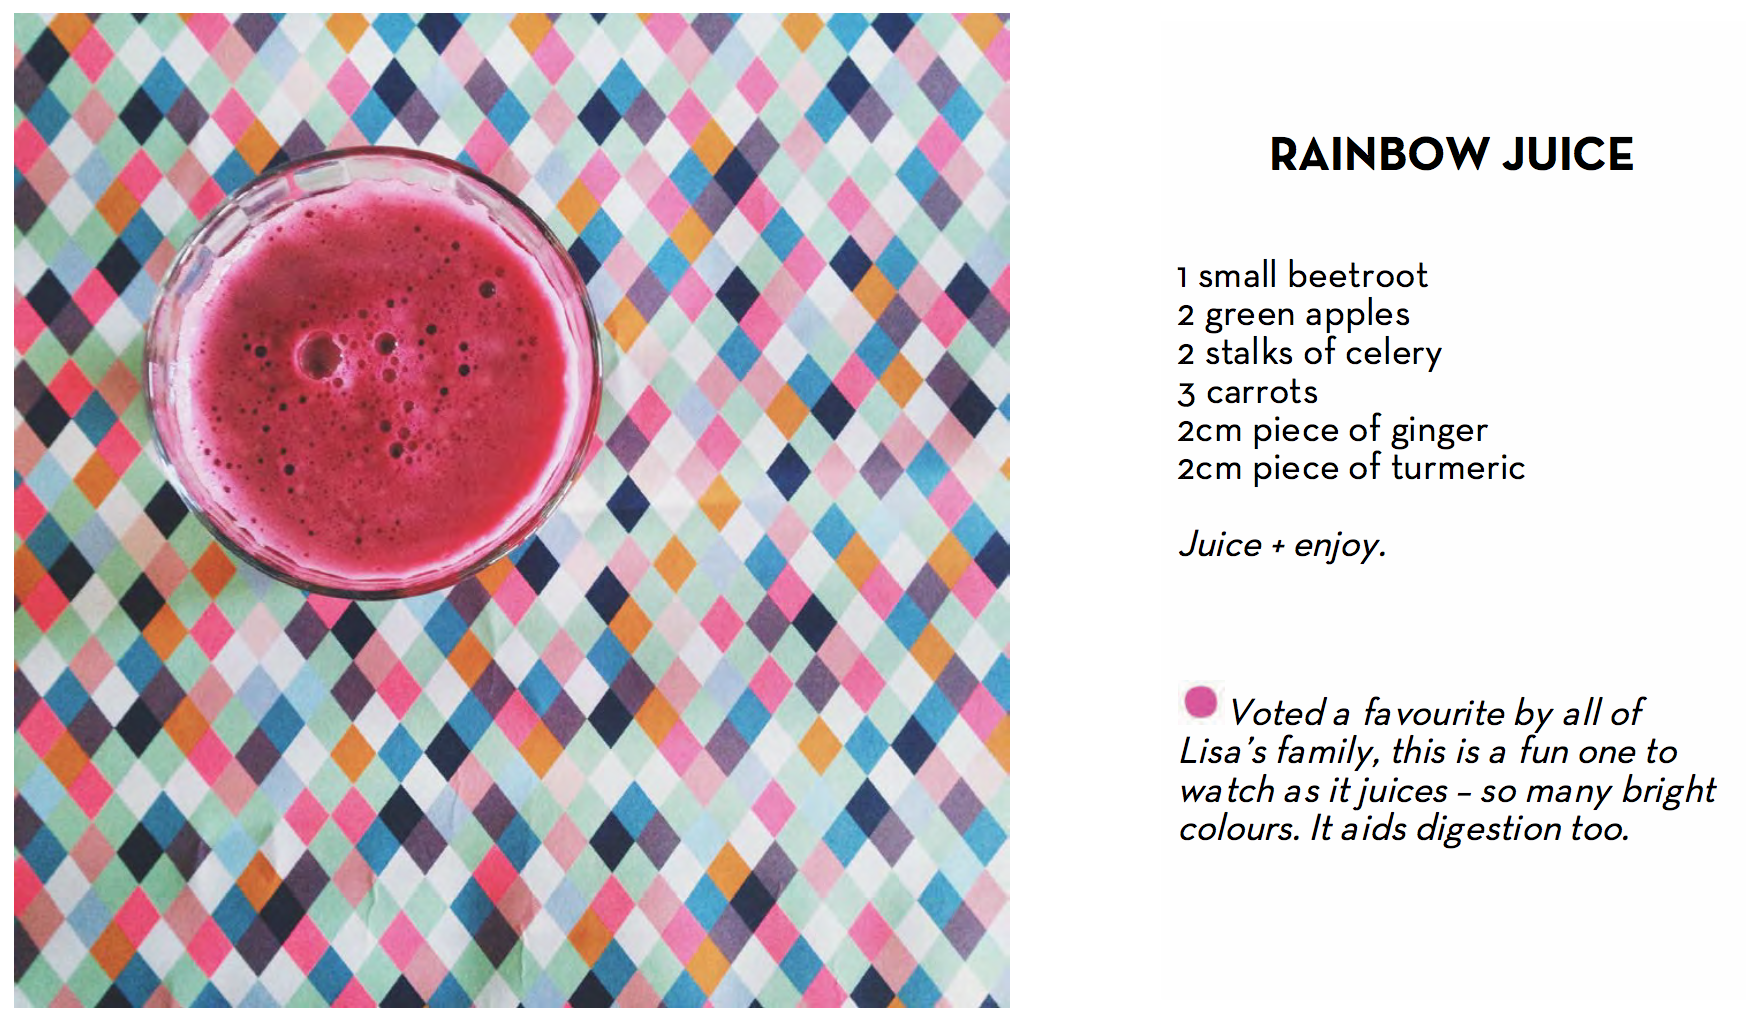 35 Delicious Juice Recipes To Try This Weekend